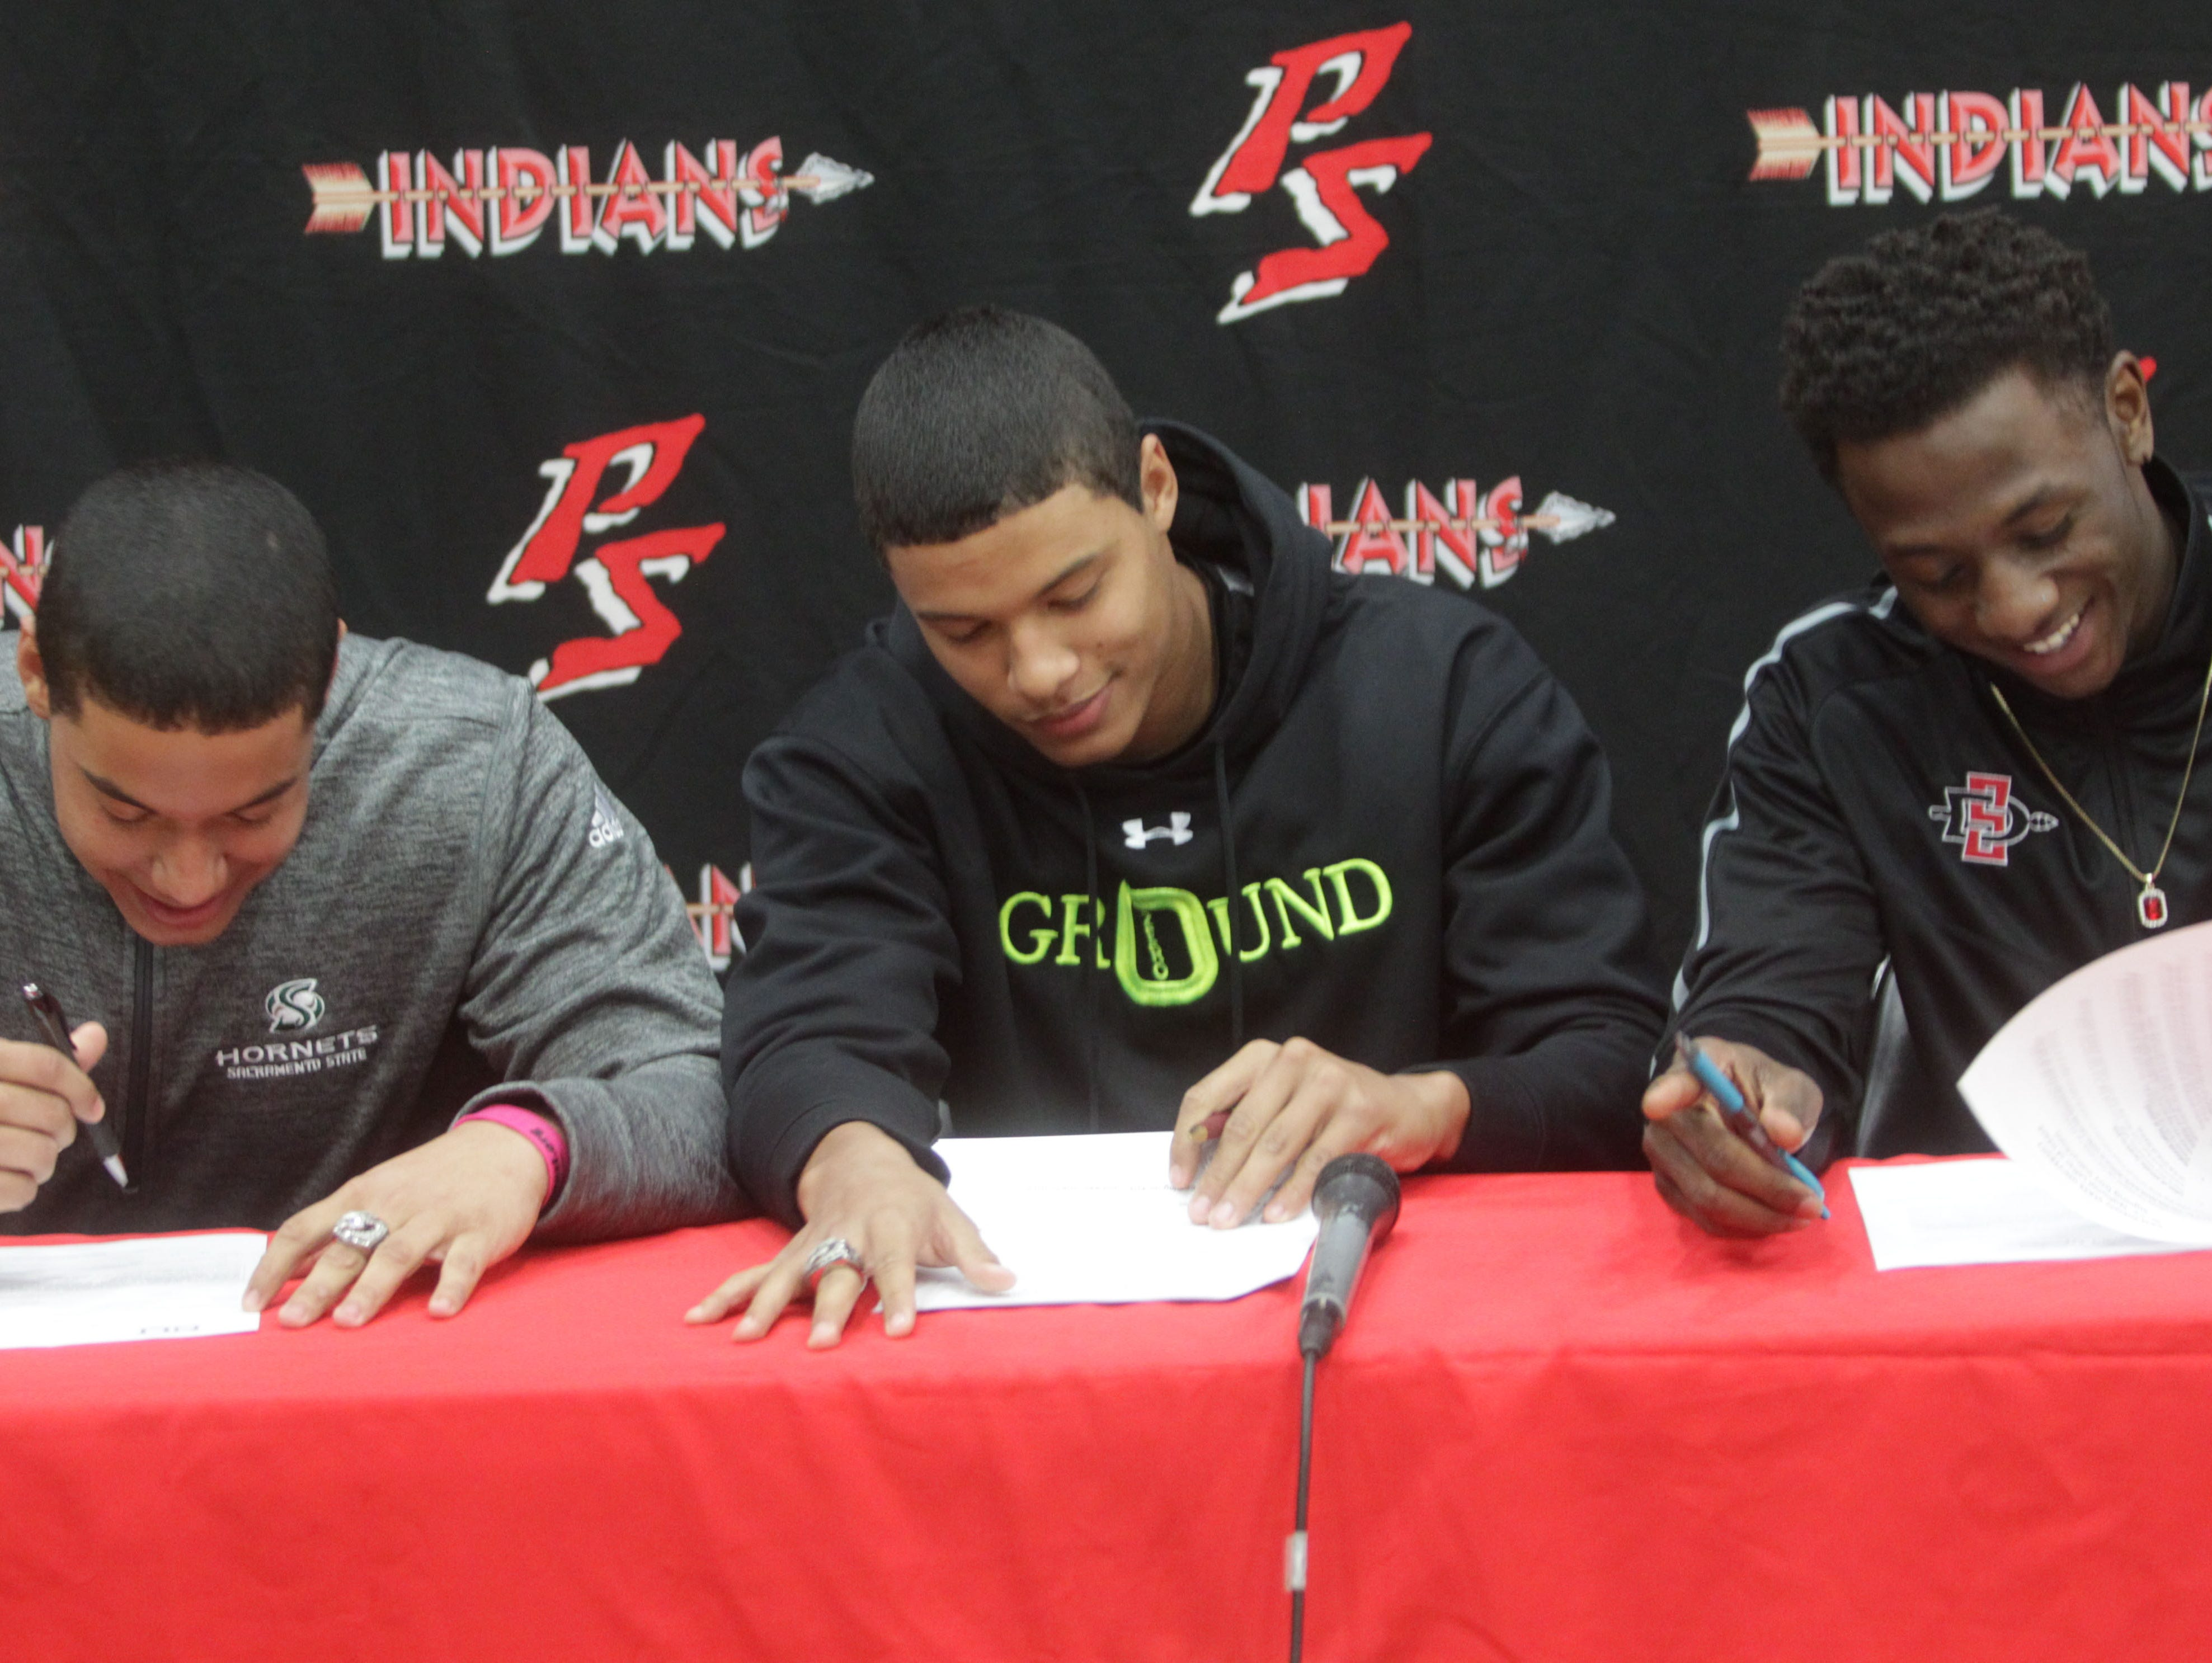 From left, twins, Tyler and Tayler Hawkins and Trenton Thompson, all students of Palm Springs High School sign their letter of intent to attend Universities on football scholarships. Tyler will attend Sacramento State University of California and Tayler and Trenton will attend San Diego State University.